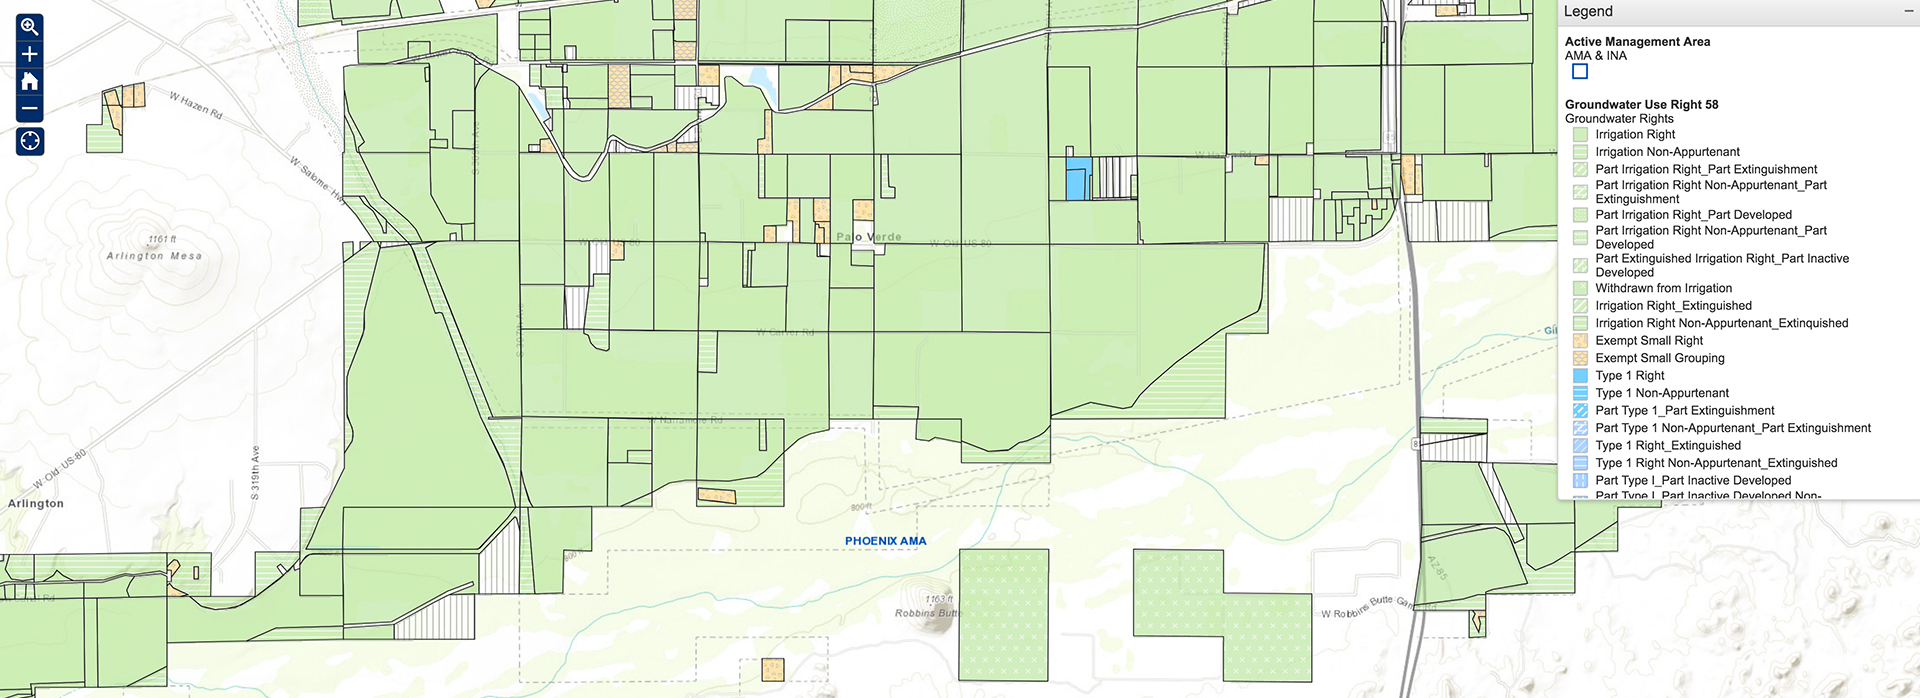 Groundwater rights map_new